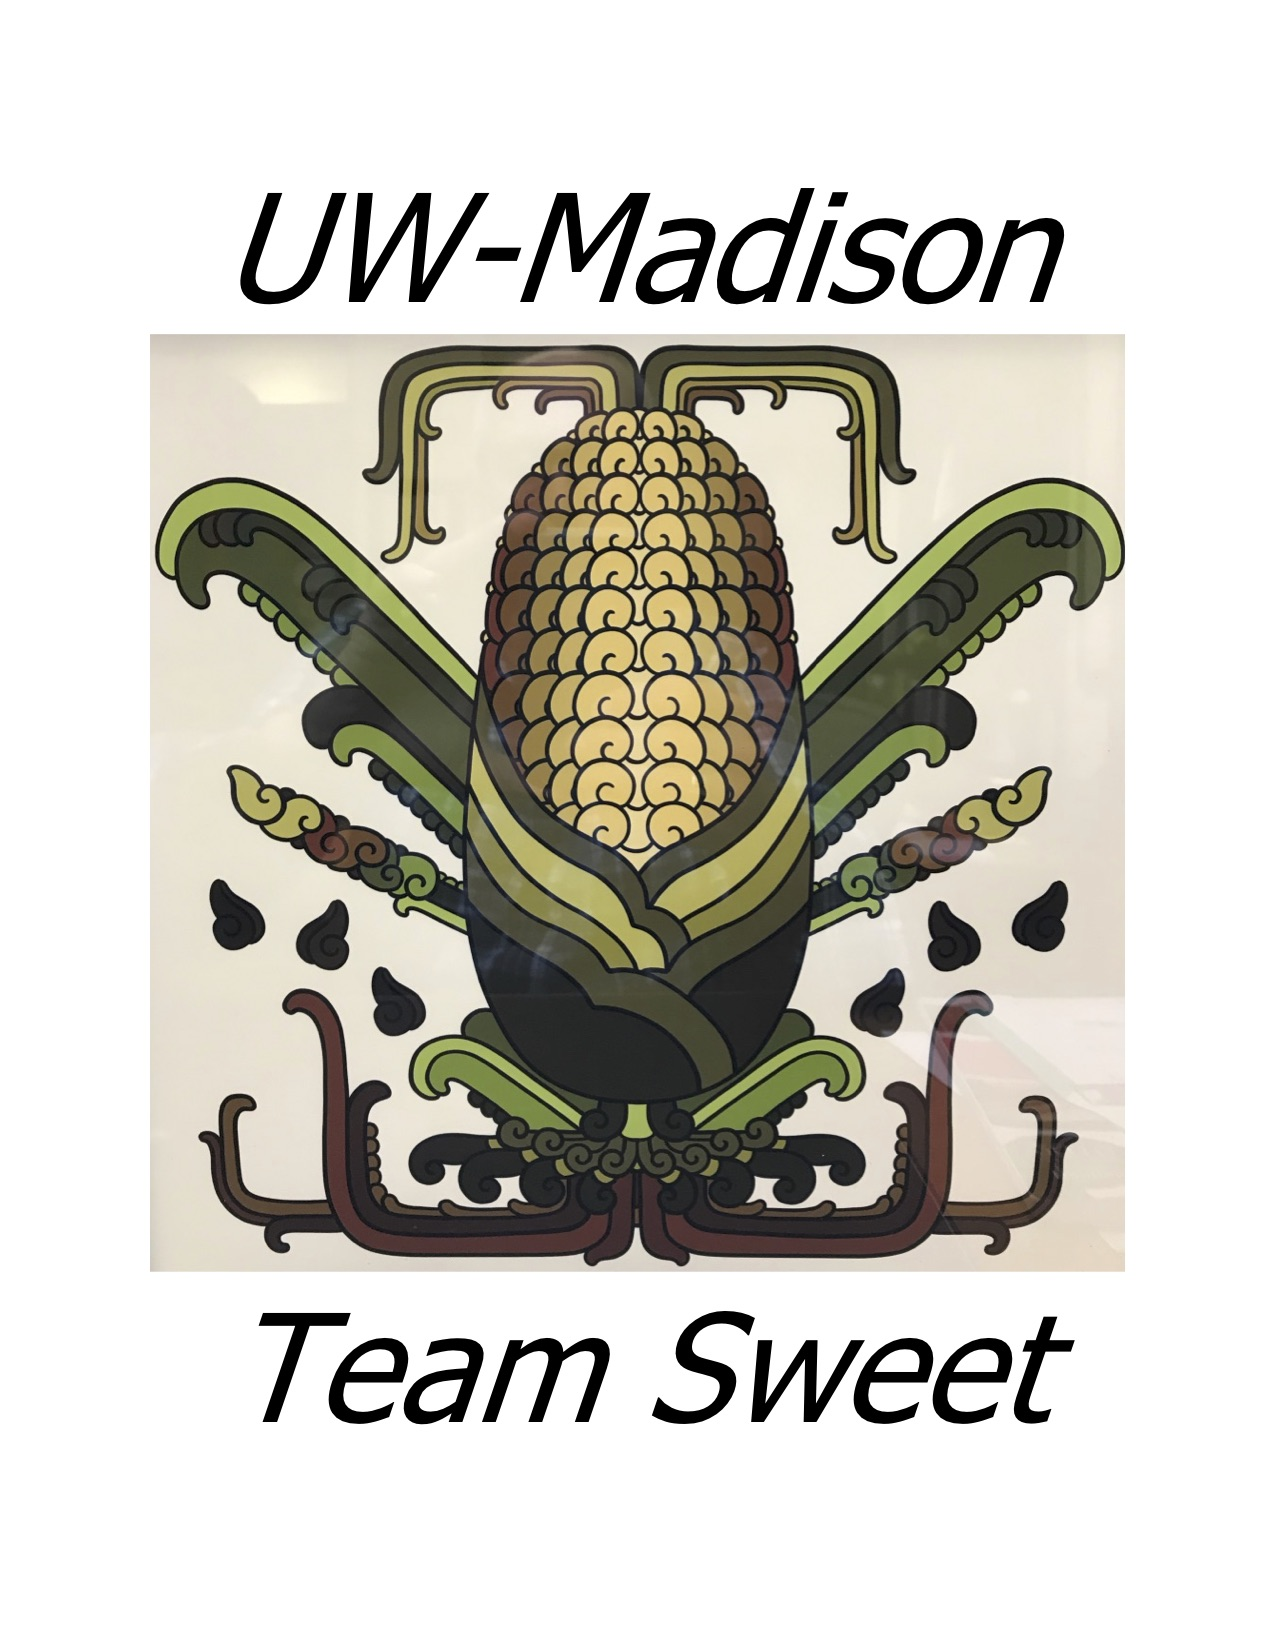 UW_Madison_Team_Sweet.jpg